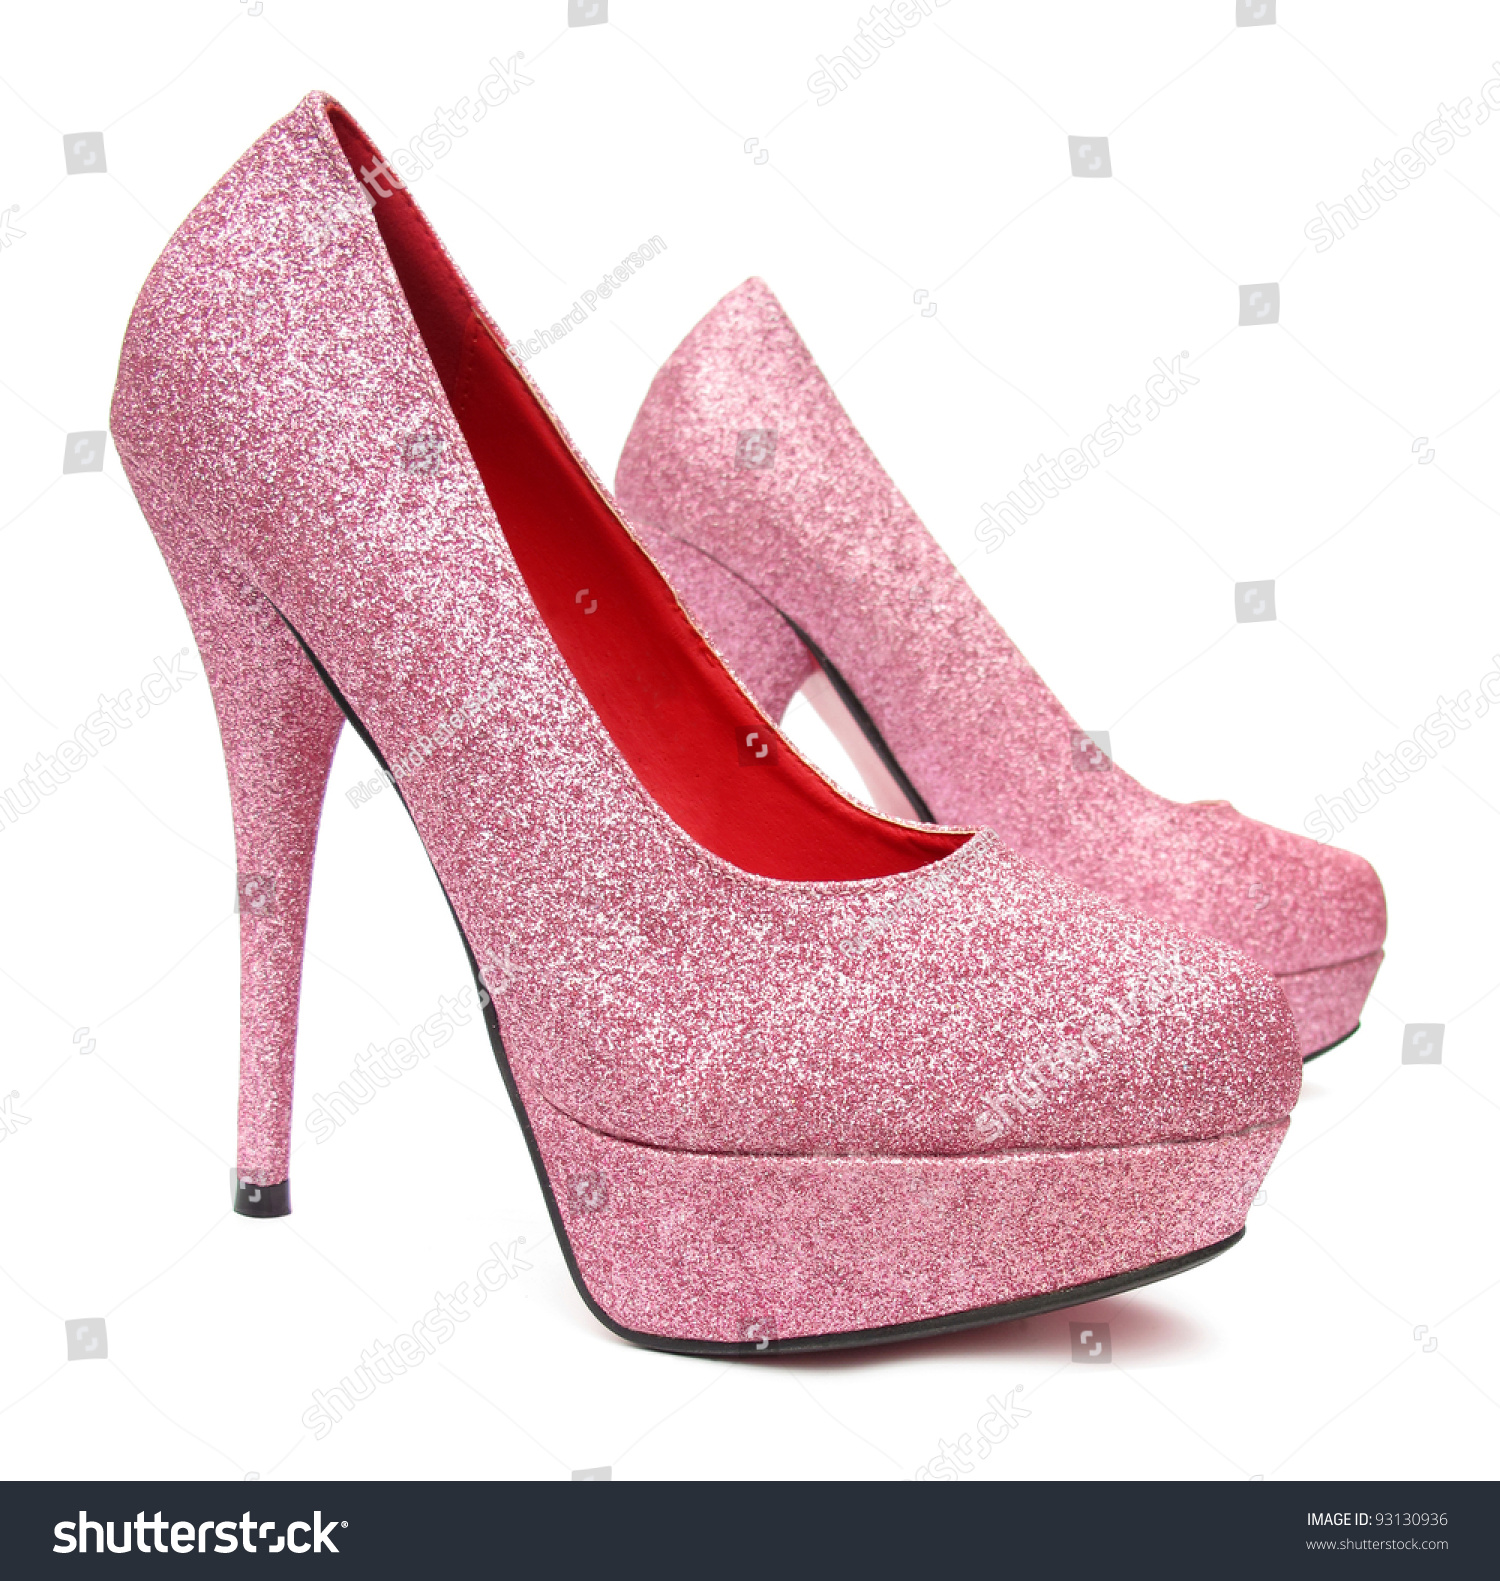 Pink High Heels Pump Shoes Stock Photo 93130936 - Shutterstock